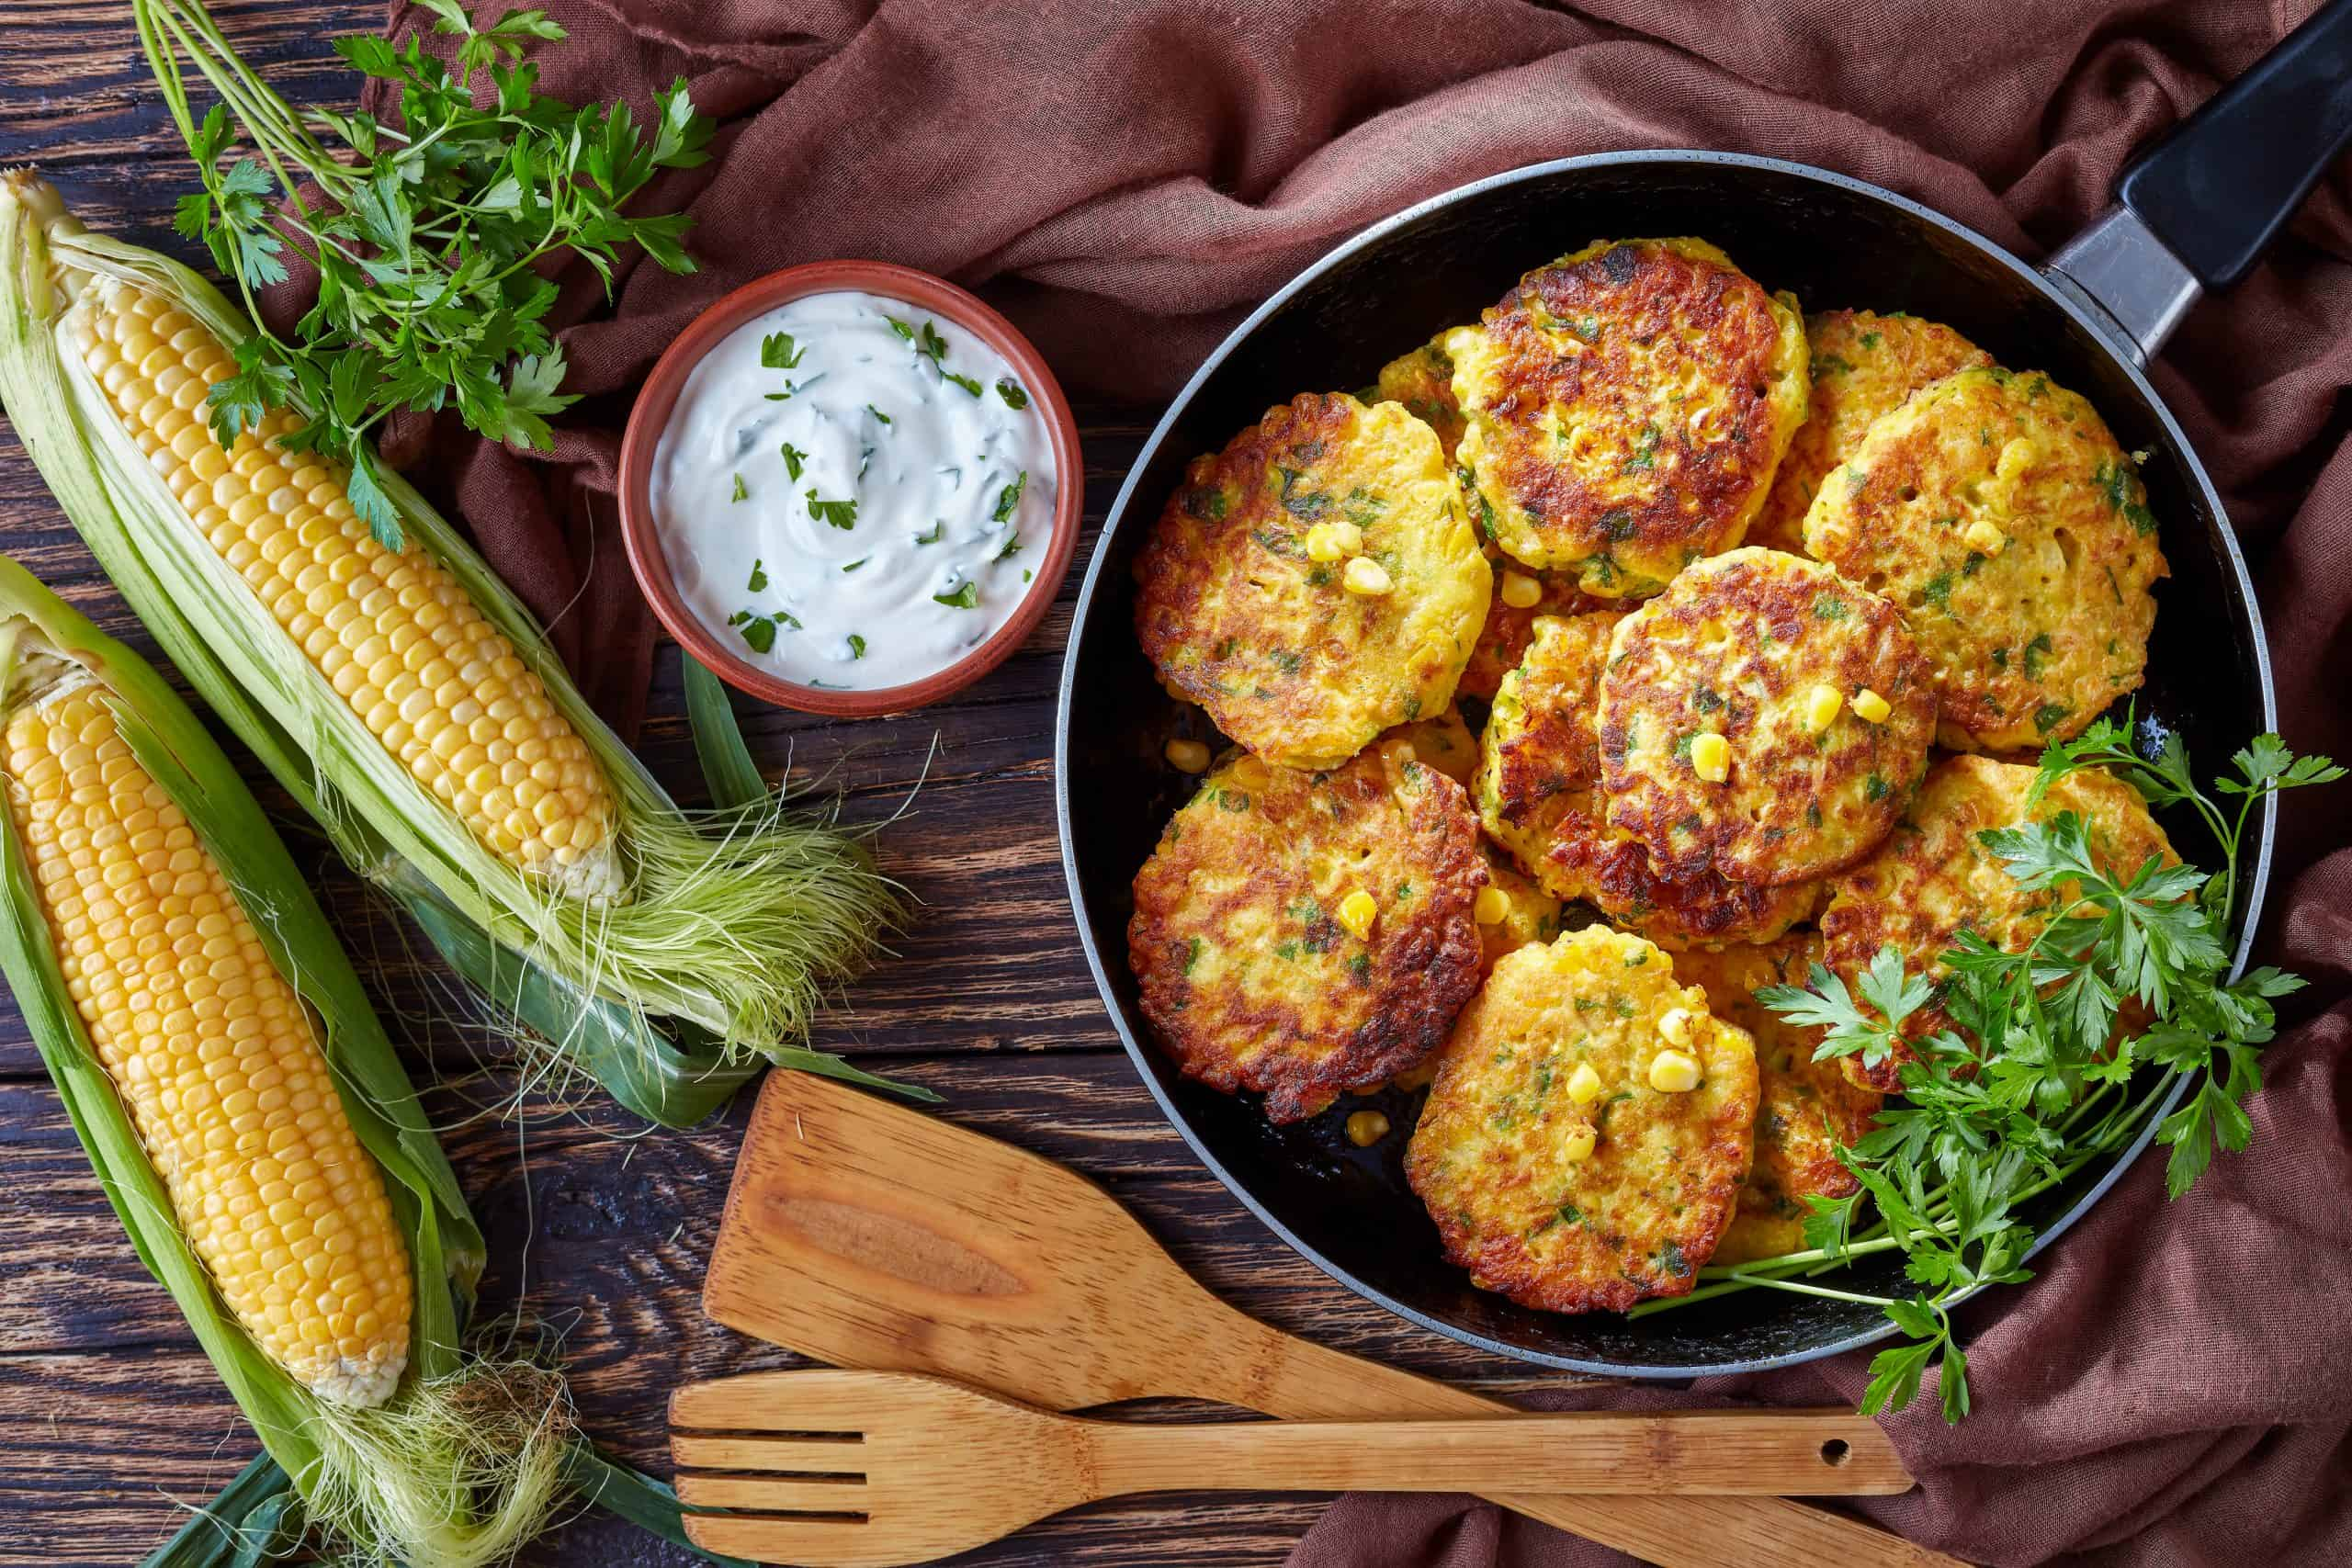 Sweet corn recipes - corn fritters in a skillet with yogurt dipping sauce and fresh sweet corn in cobs on an old wooden kitchen table